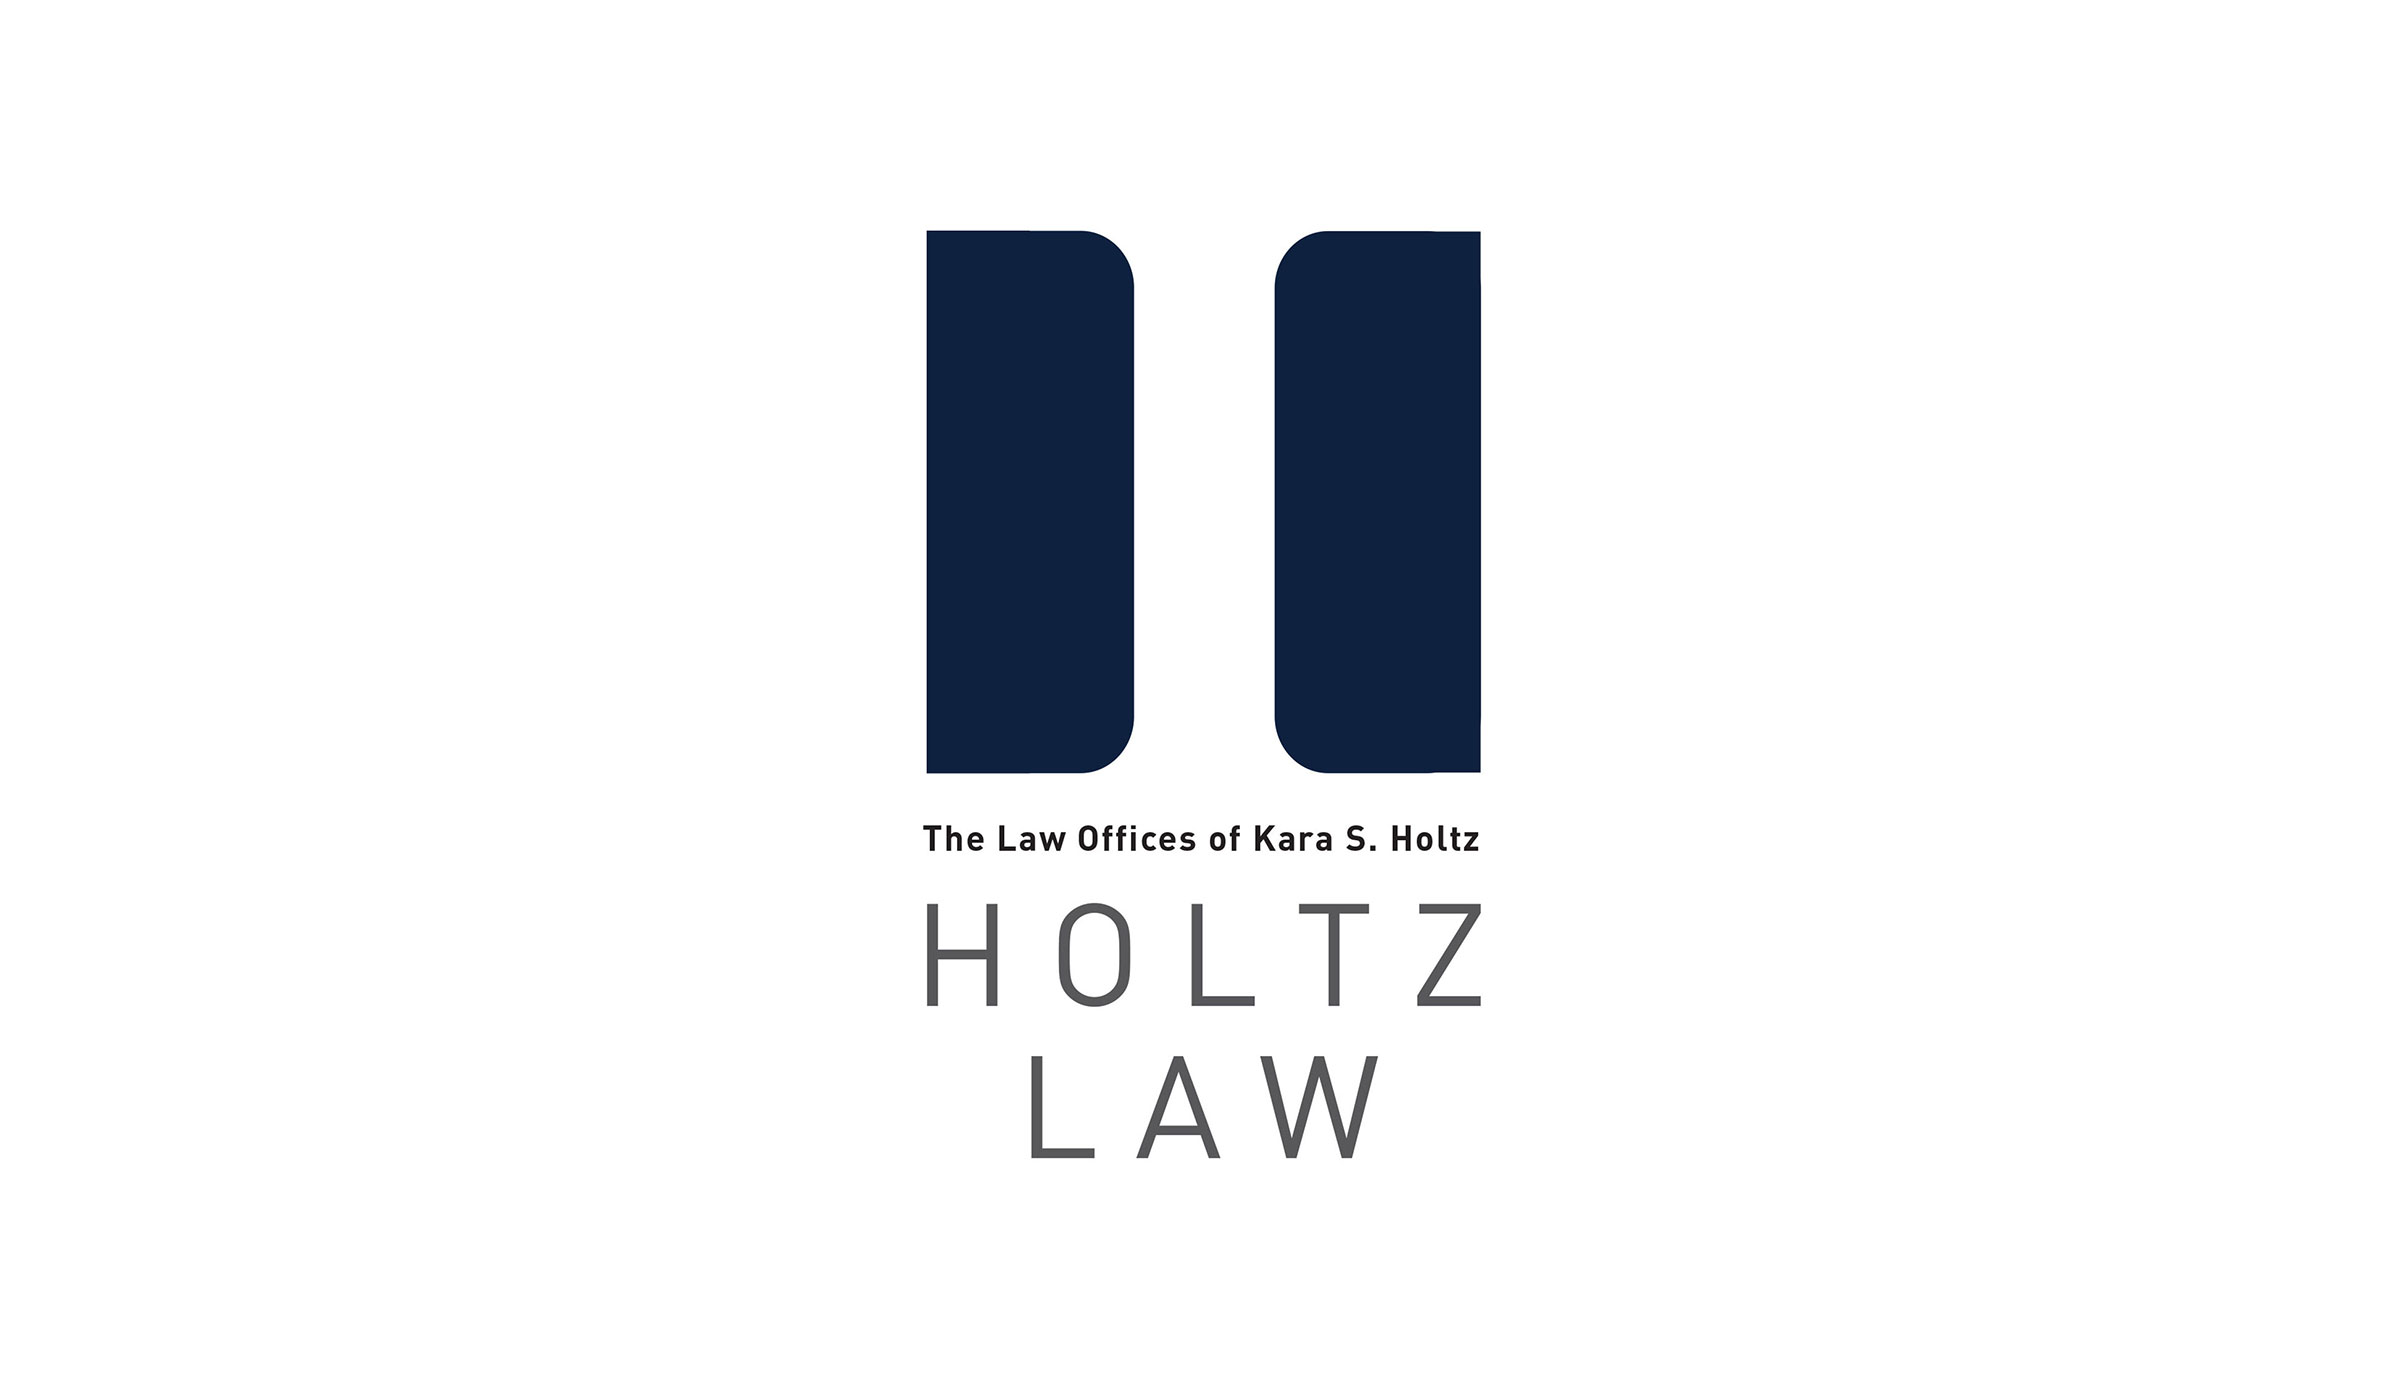 holtz-law-logo